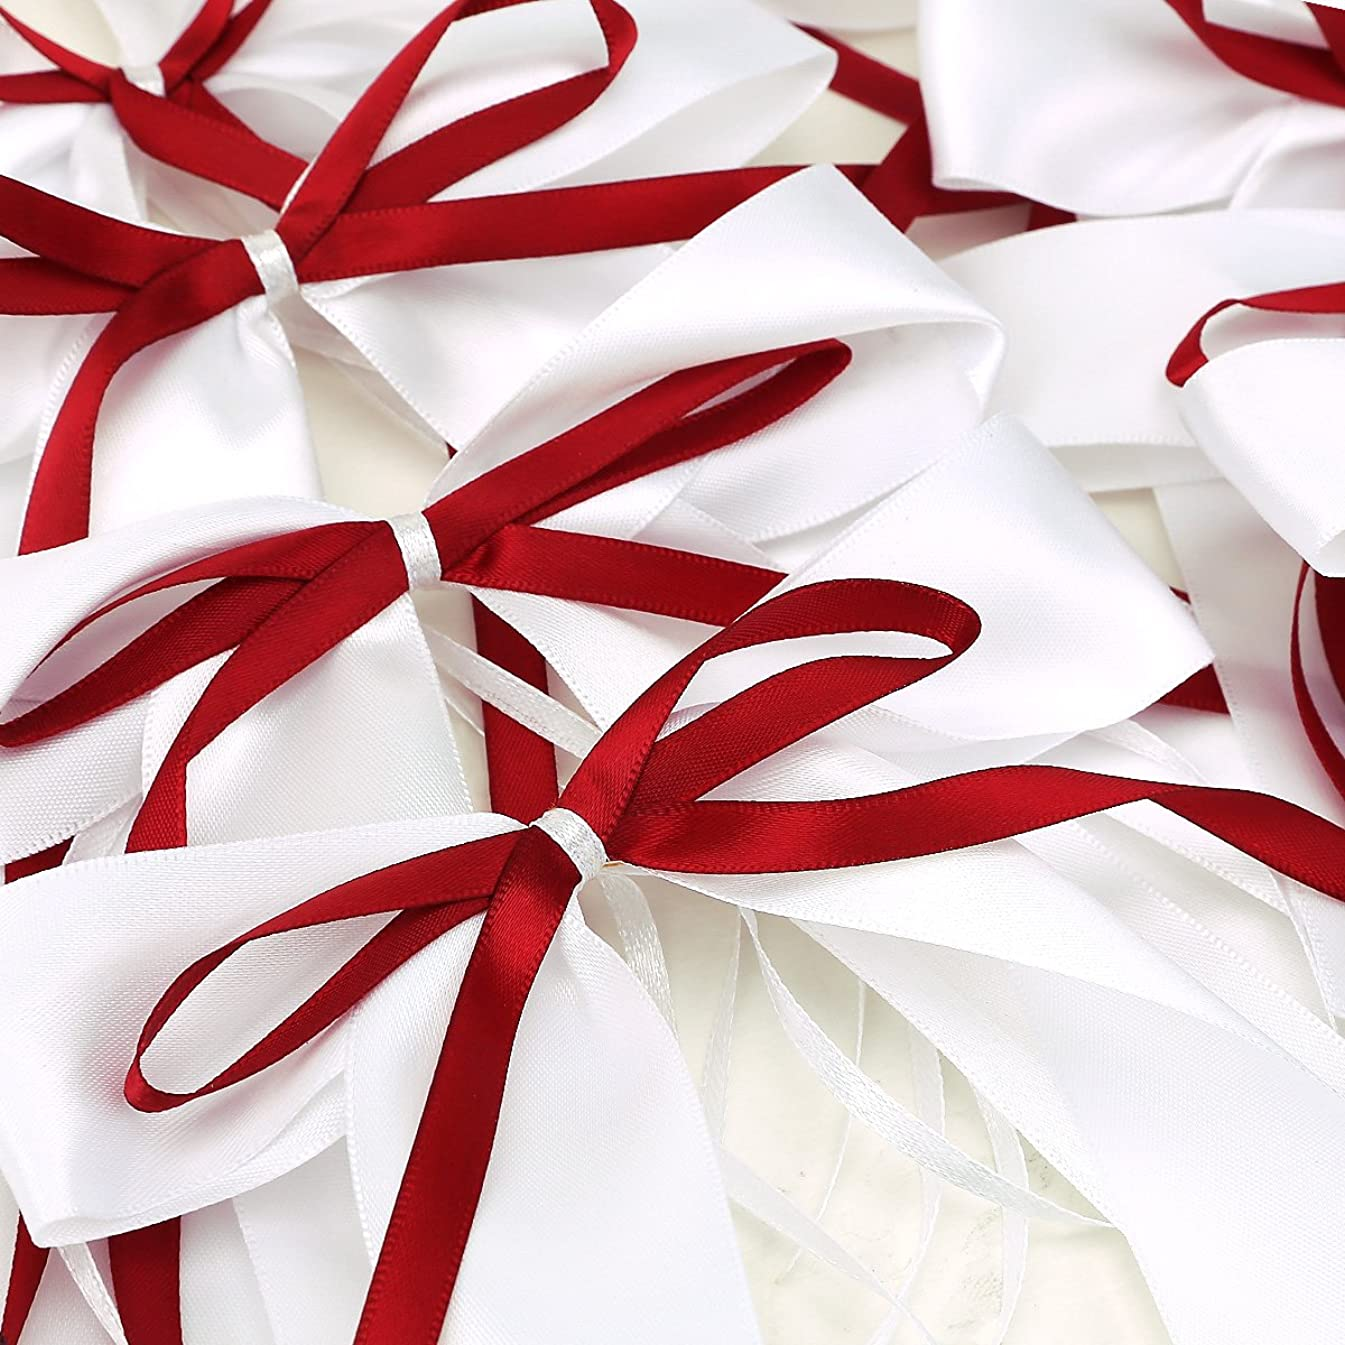 Satin Ribbon Bows For Wedding Pew Gift Box Favours Card Party Decorations DIY (10 red/white)